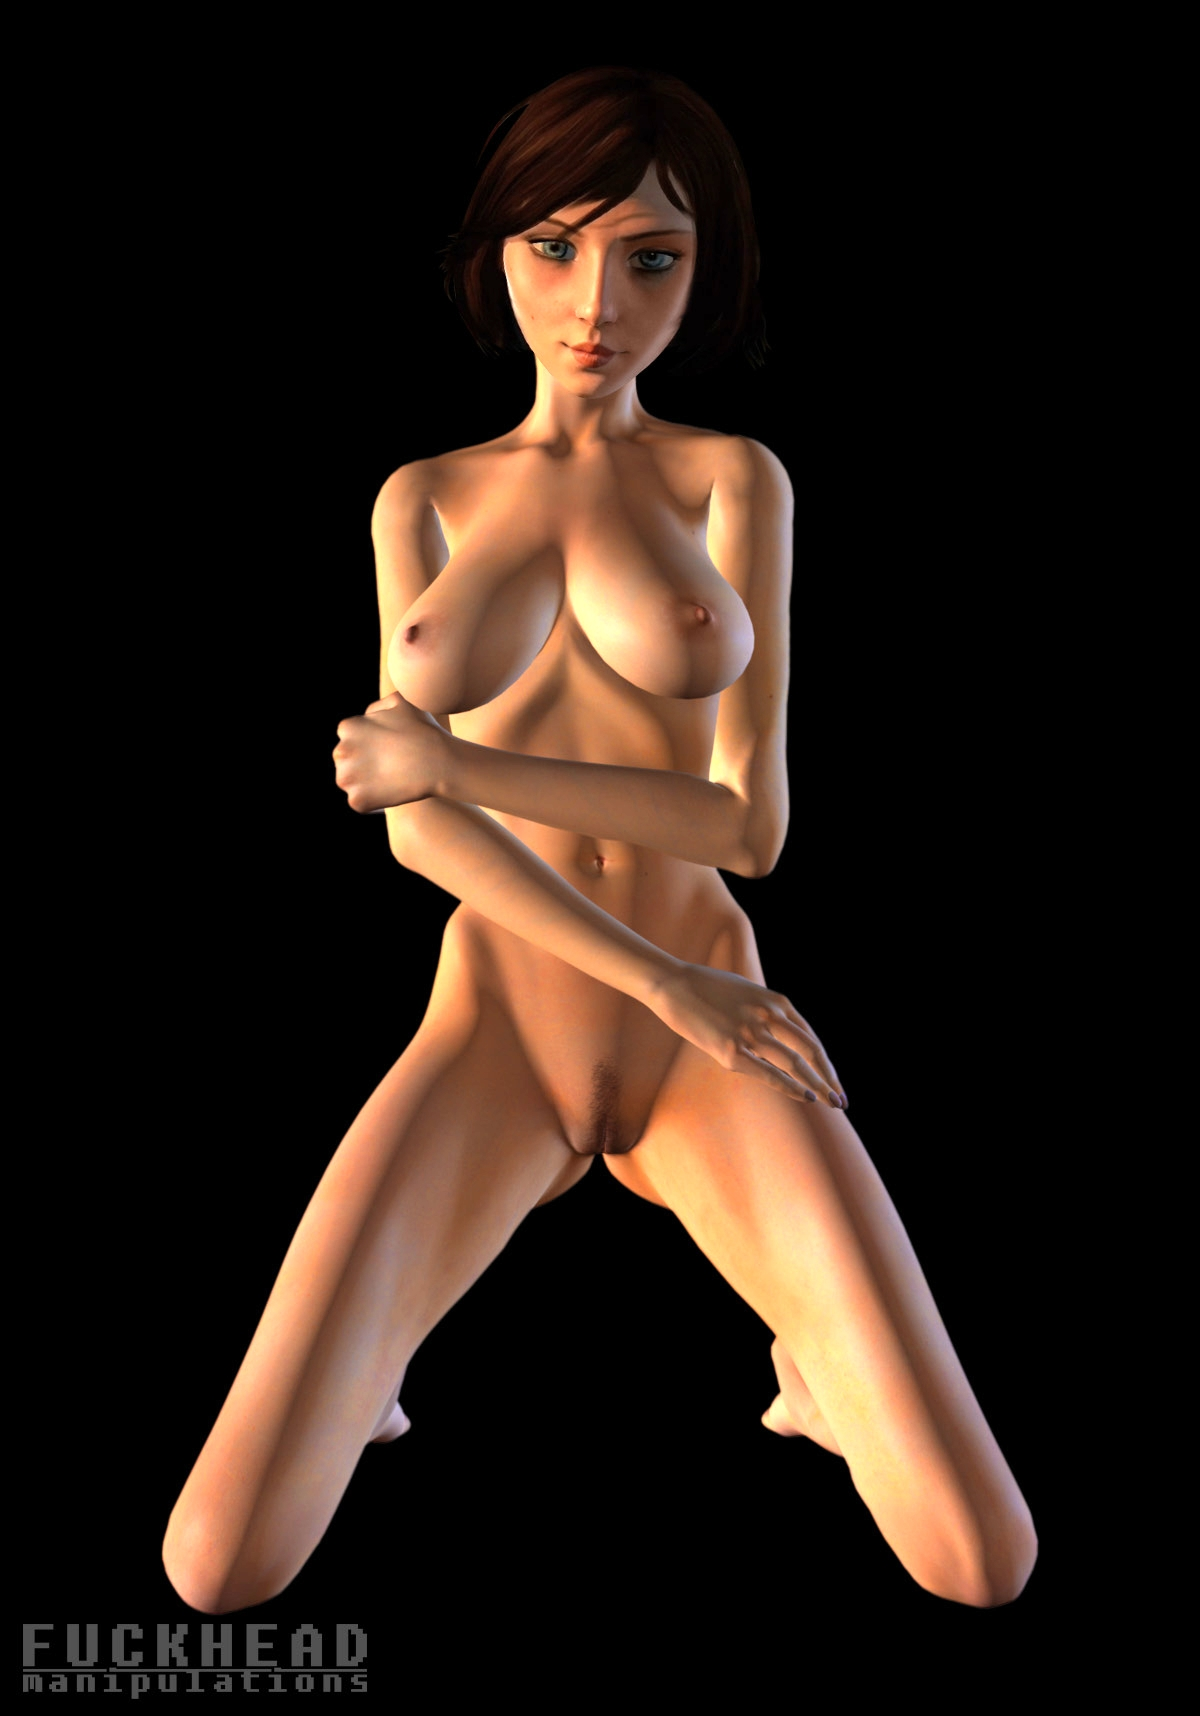 3D nakedskin pics tomb raider-nude-patch shtm! erotic scene